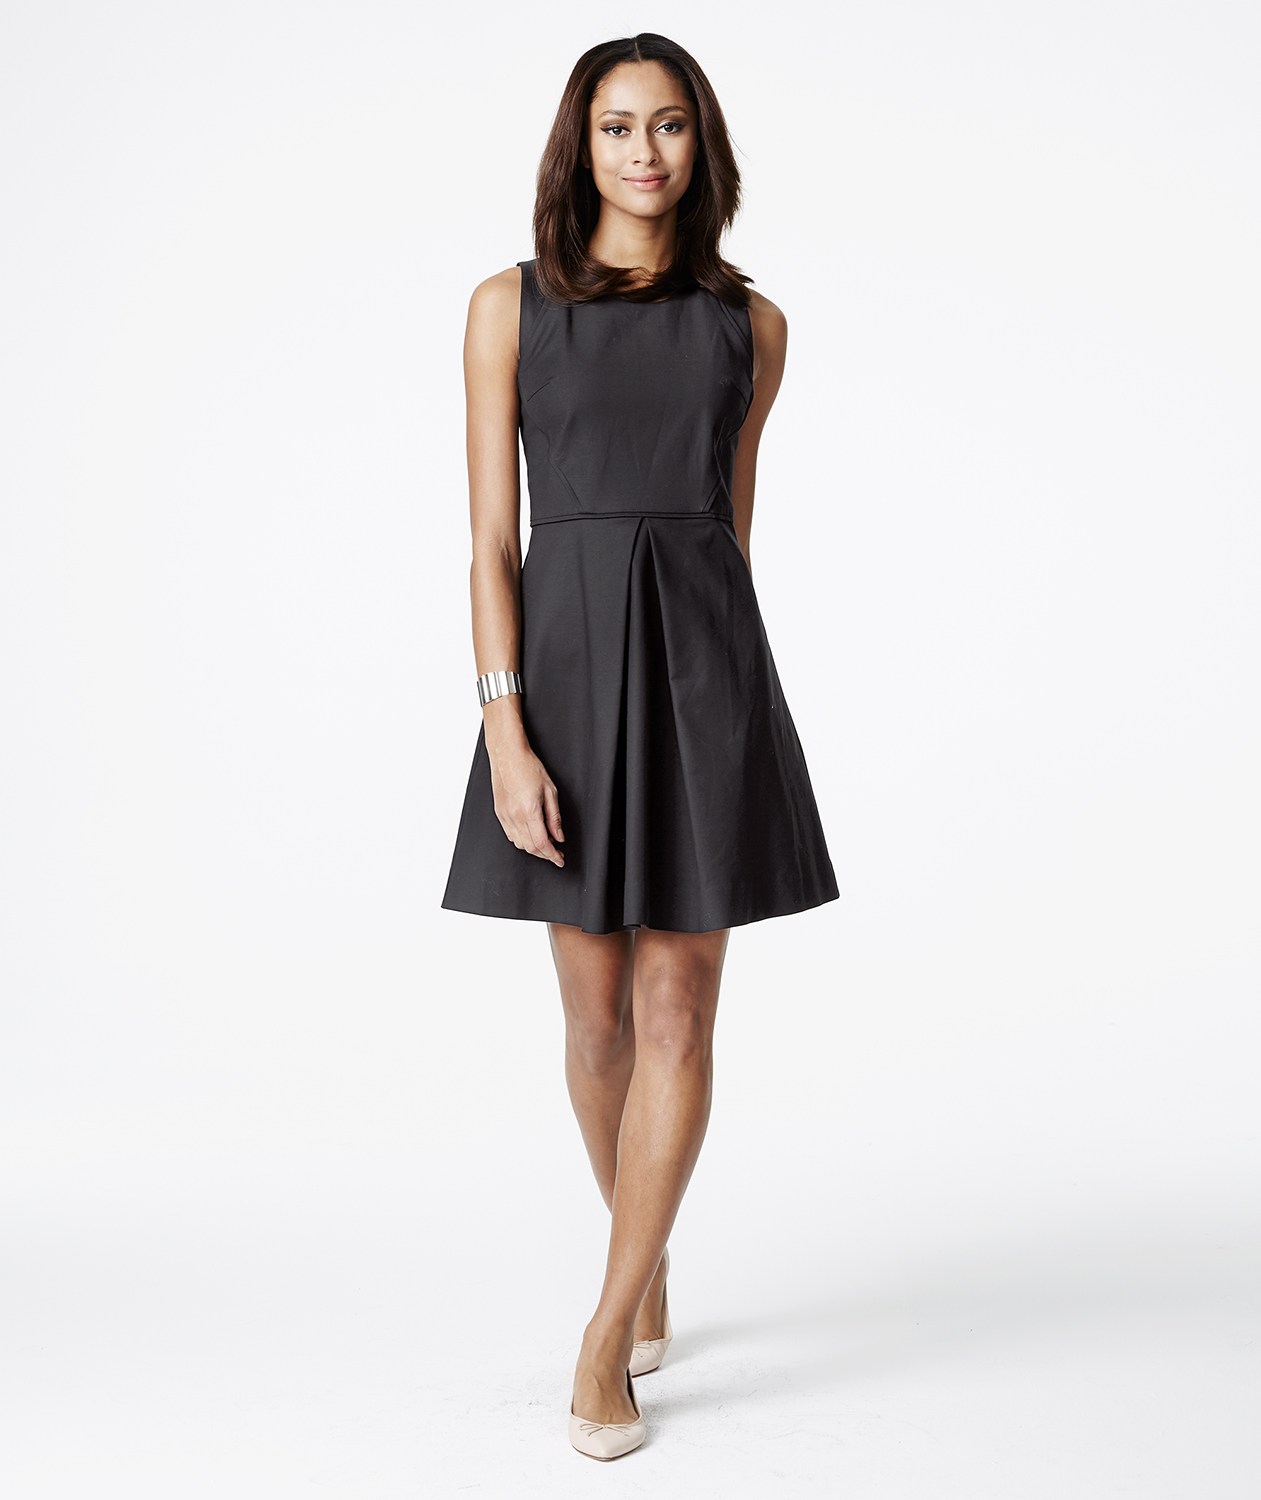 Gap Linen-Cotton Fit & Flare Dress